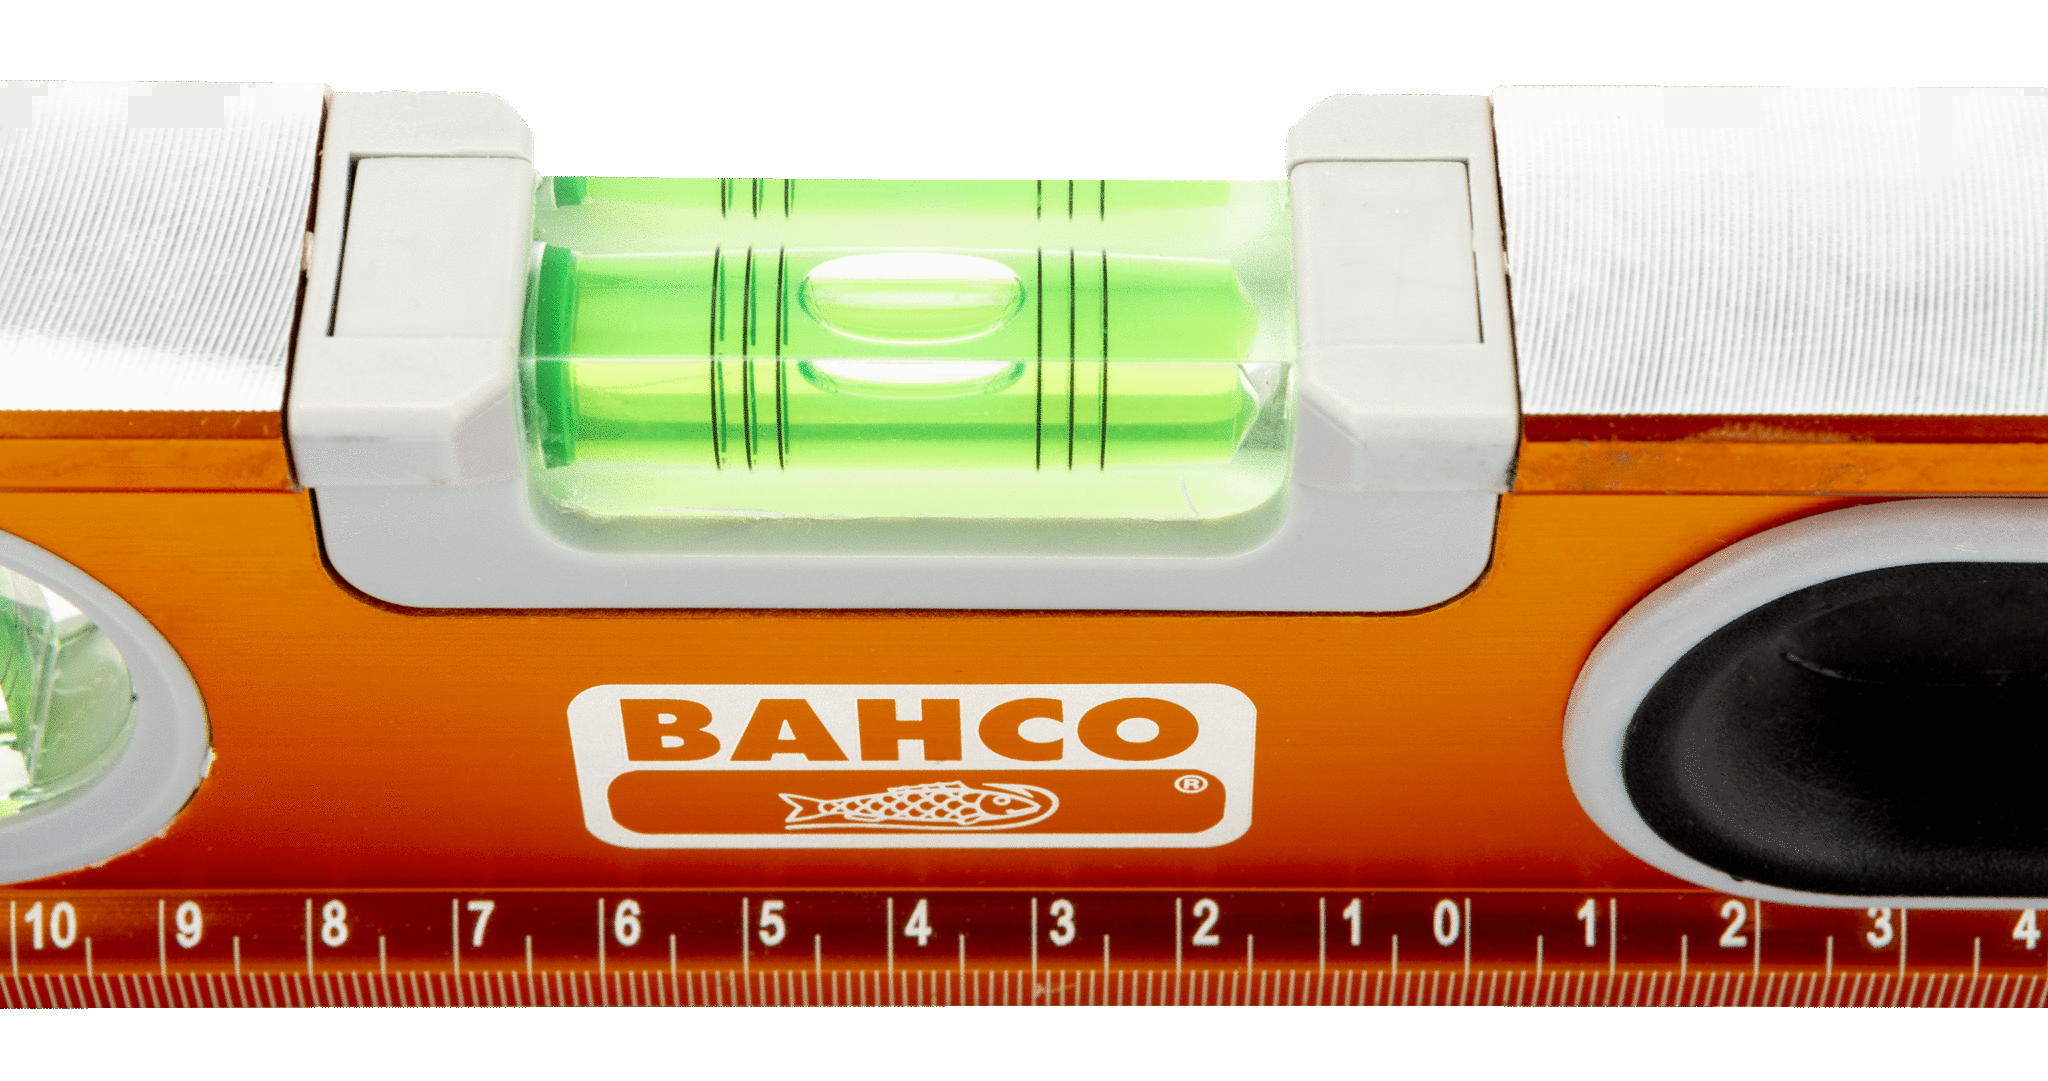 bahco466